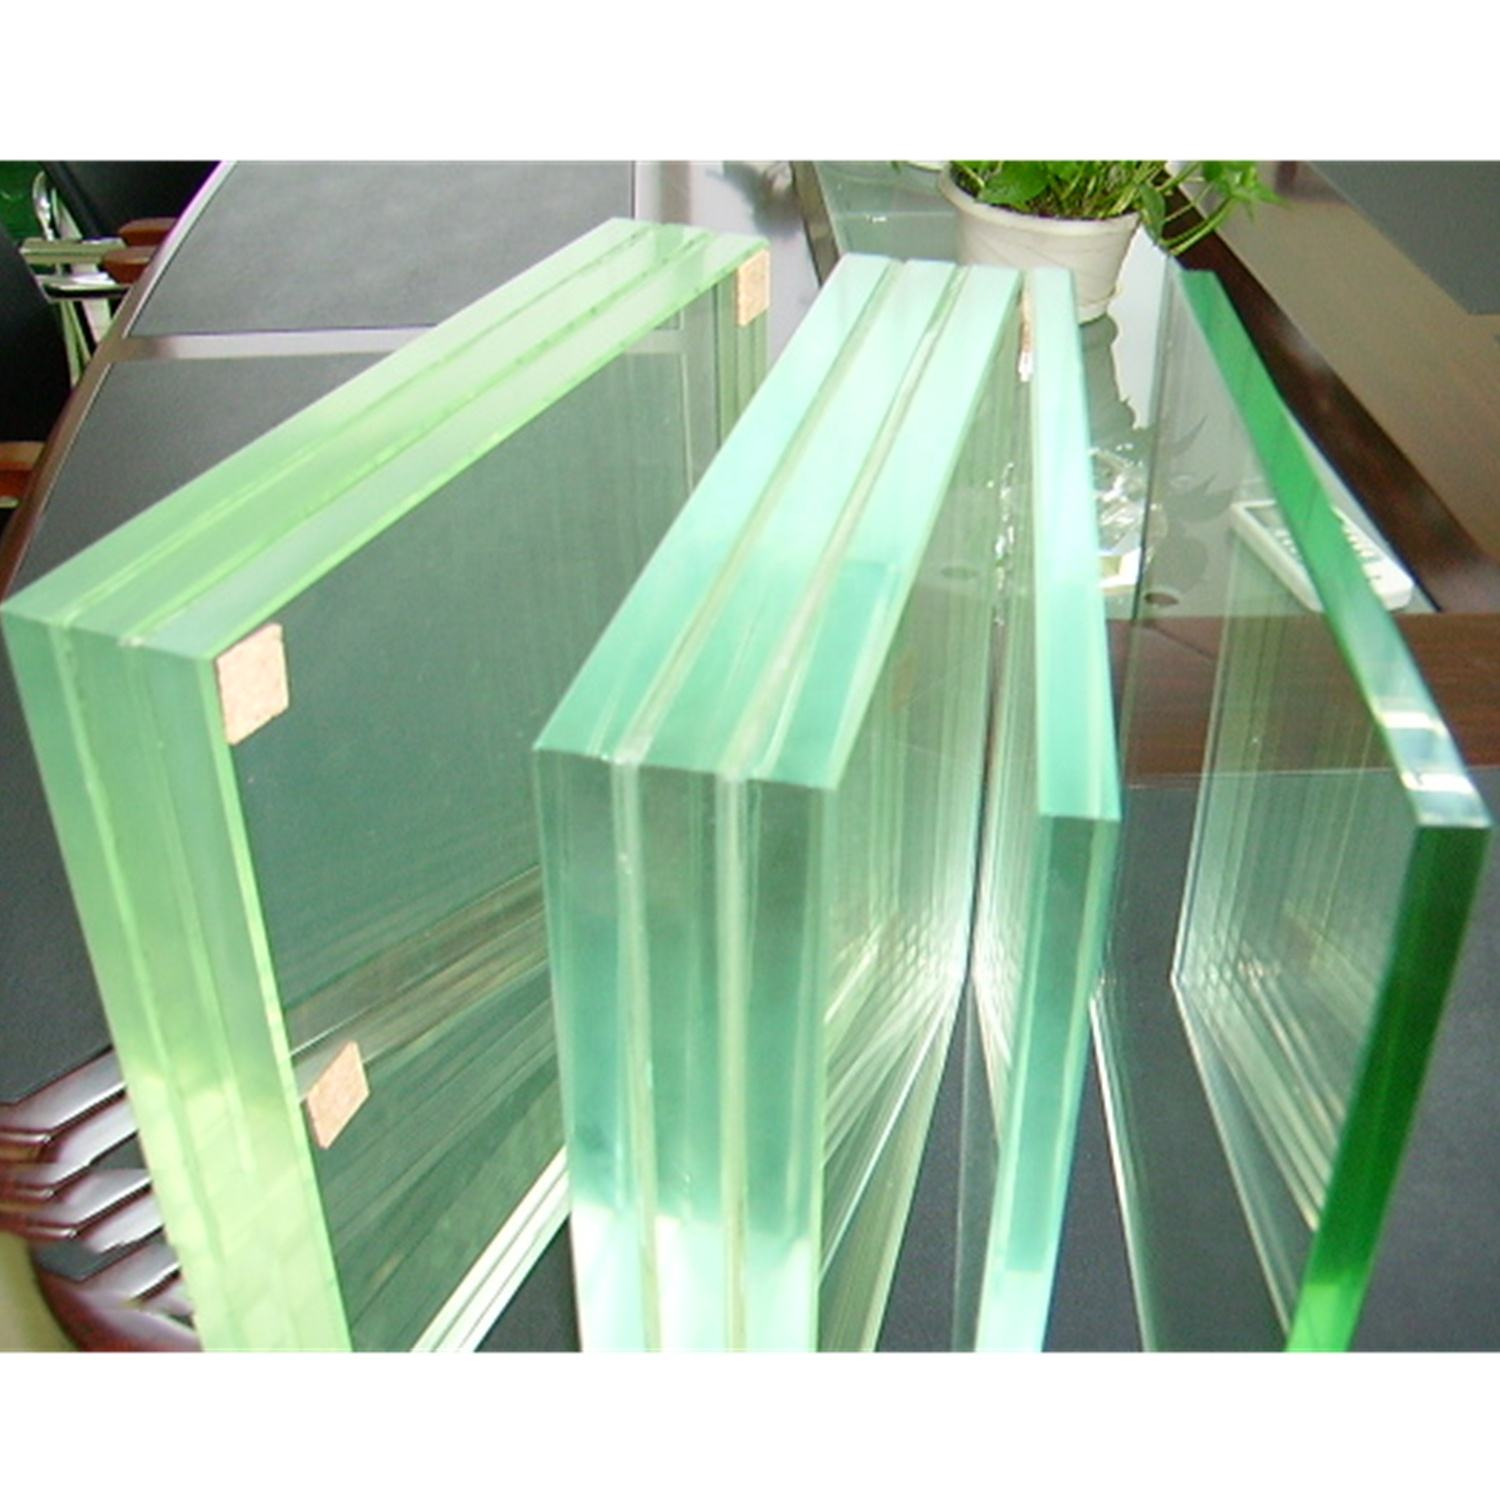 12mm Tempered Glass Laminated Glass Low Price 55.2 66.2 44.2 6.38 10.38 6 8 16 12 13.52 Mm Low Iron Polished Edge Tempered Triple Laminated Glass